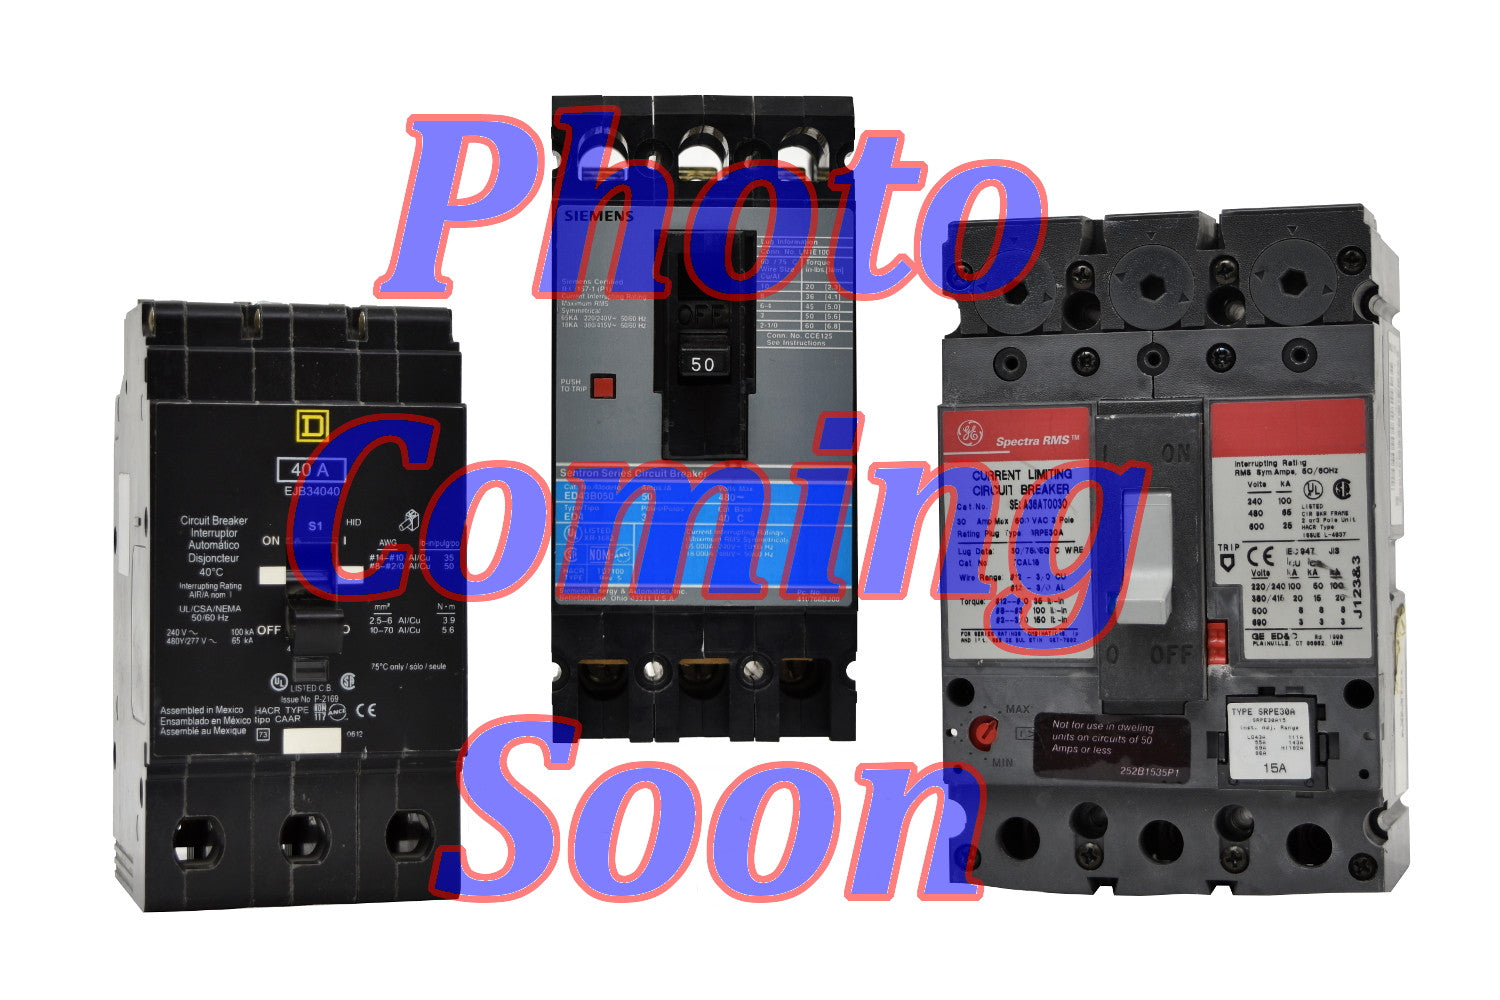 General Electric FCS326TE090R2 Circuit Breakers